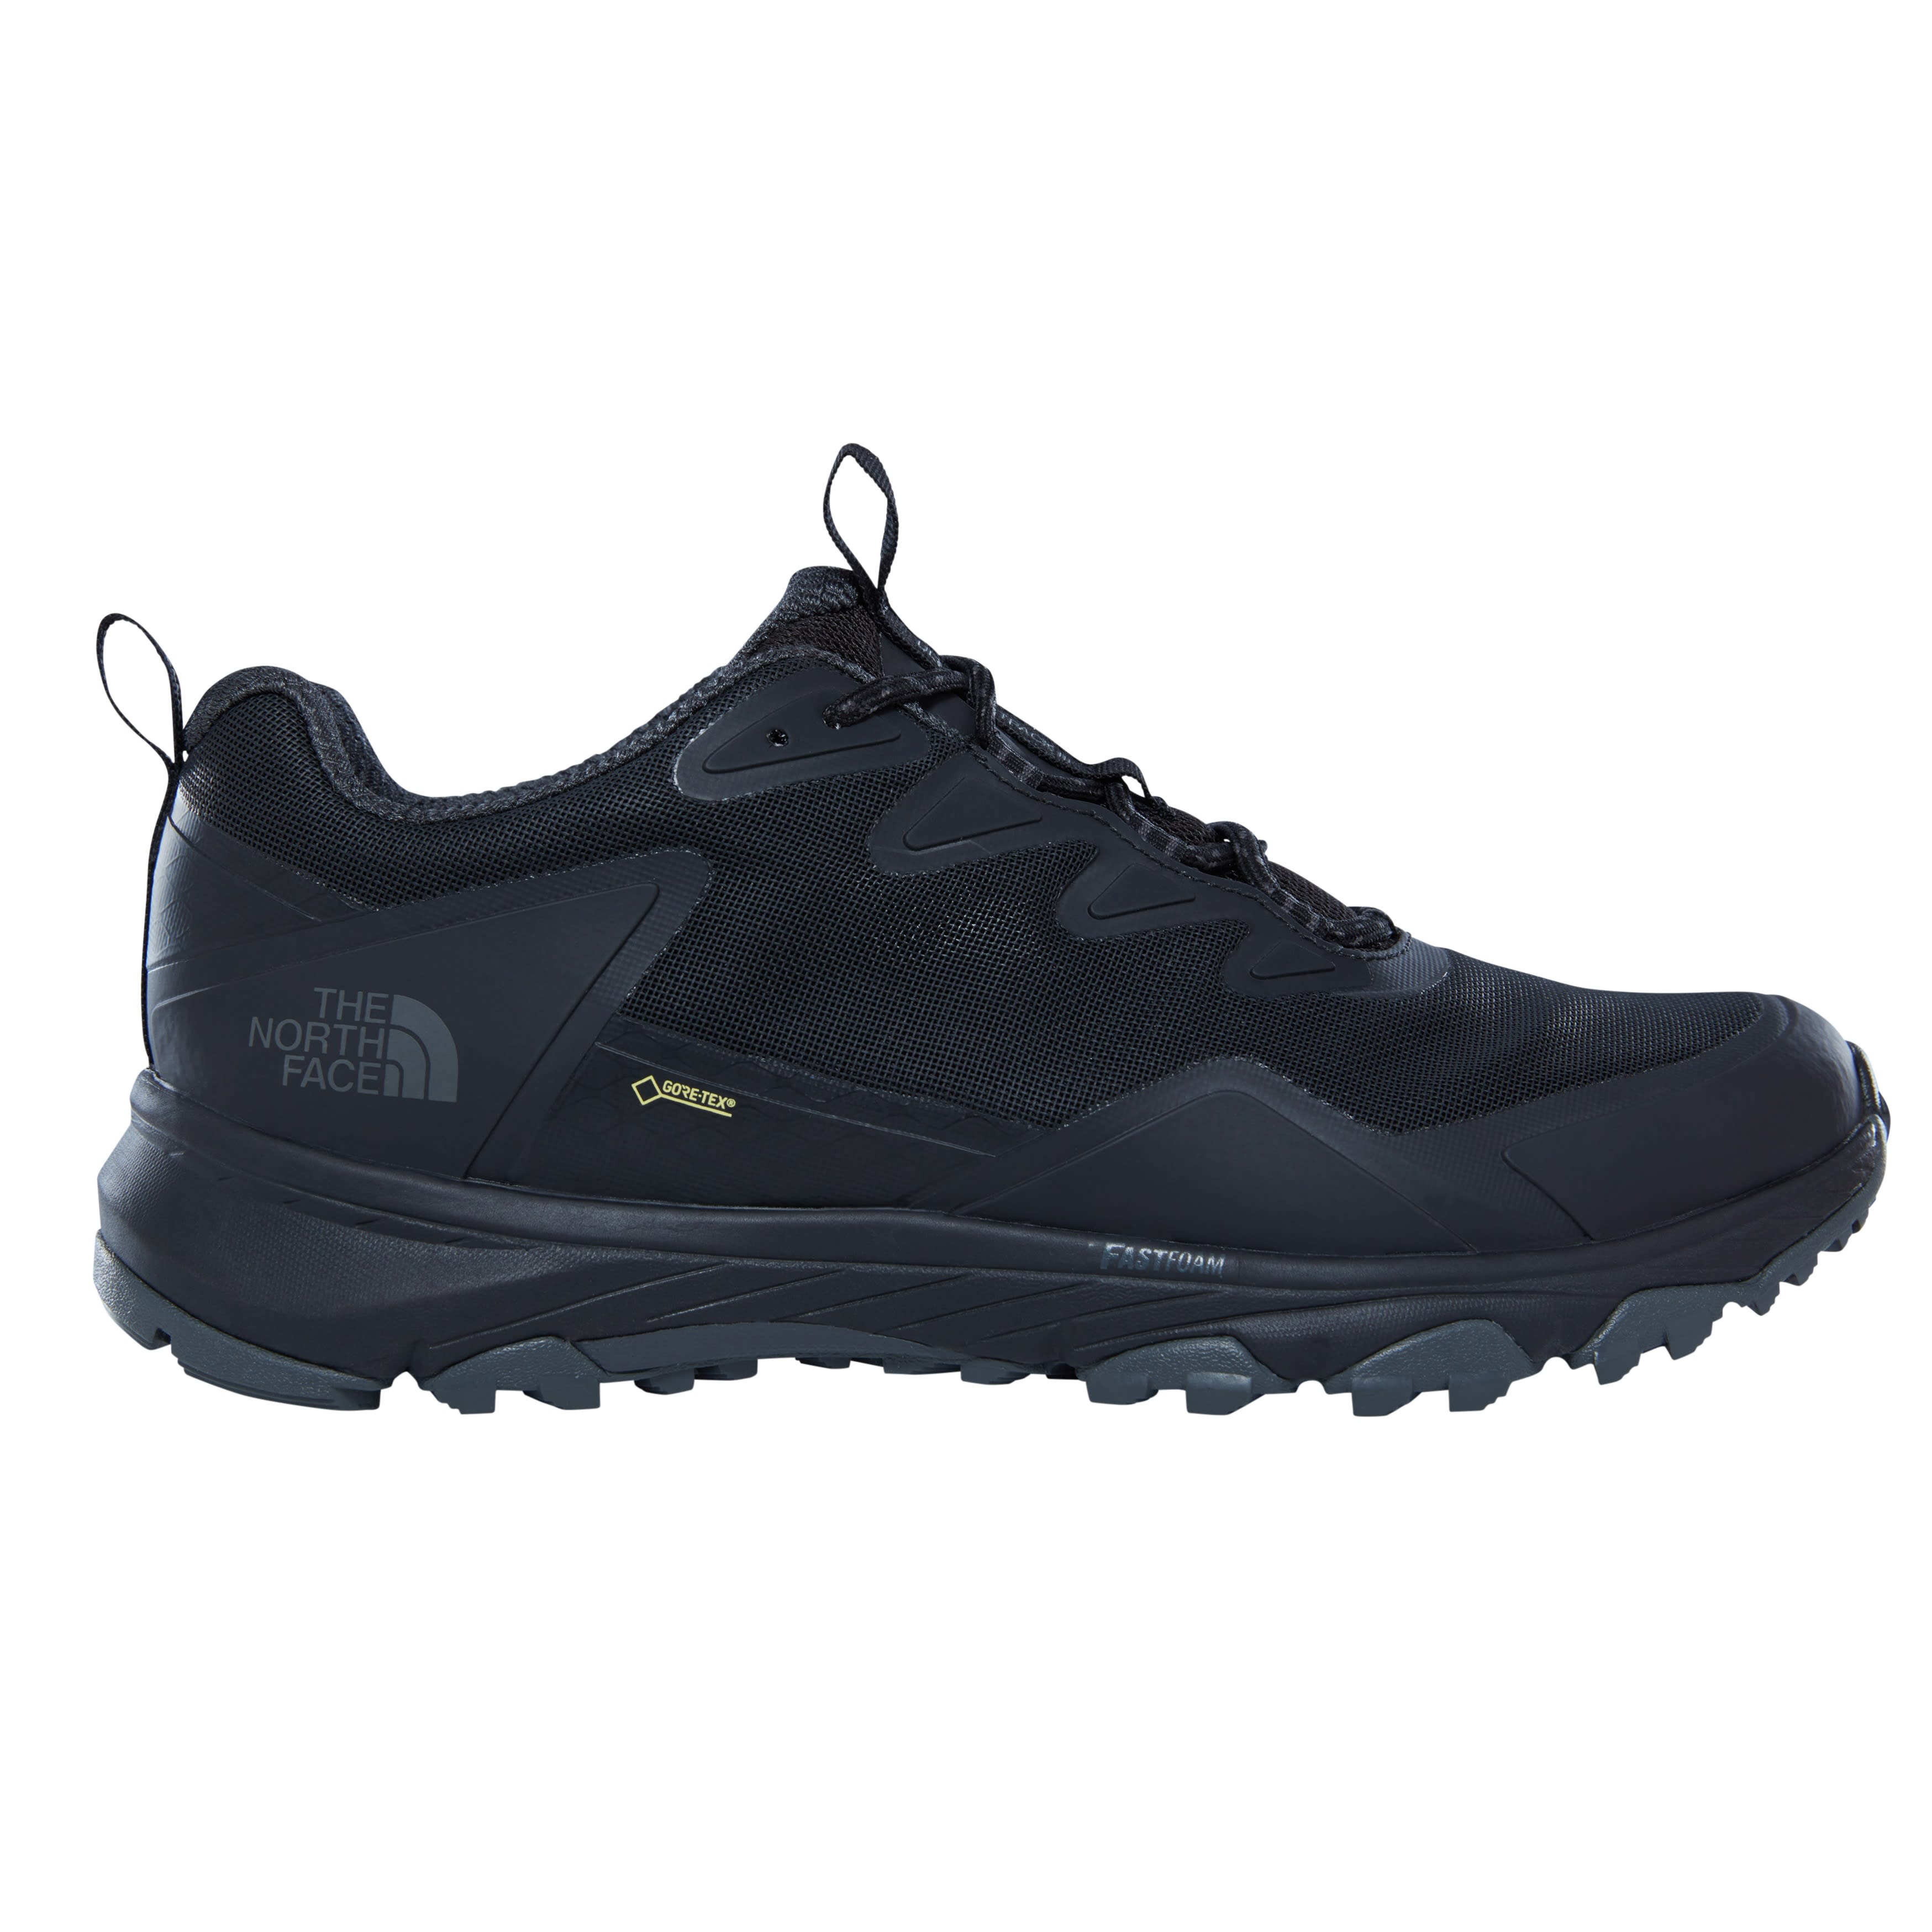 5655a601 Køb The North Face Men's Ultra Fastpack III Gore-Tex fra Outnorth